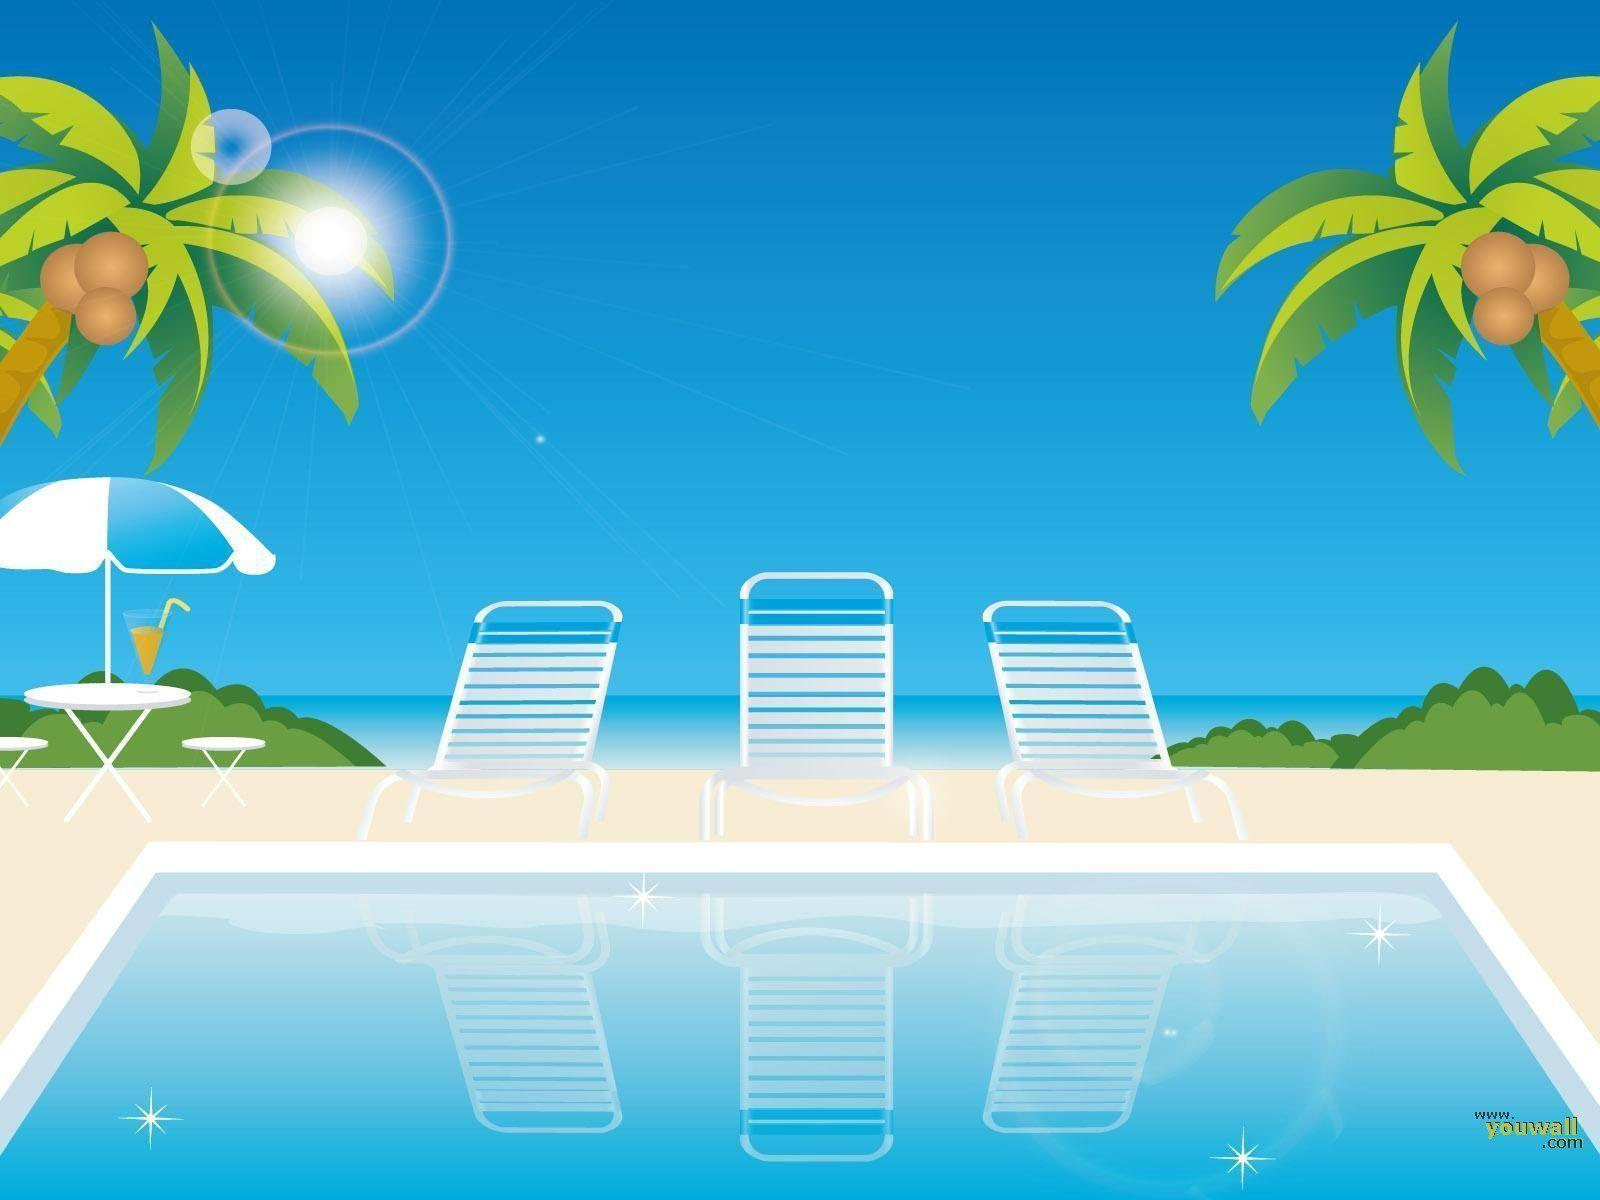 Youwall Summer Time Wallpapers Wallpaperwallpapers taken from